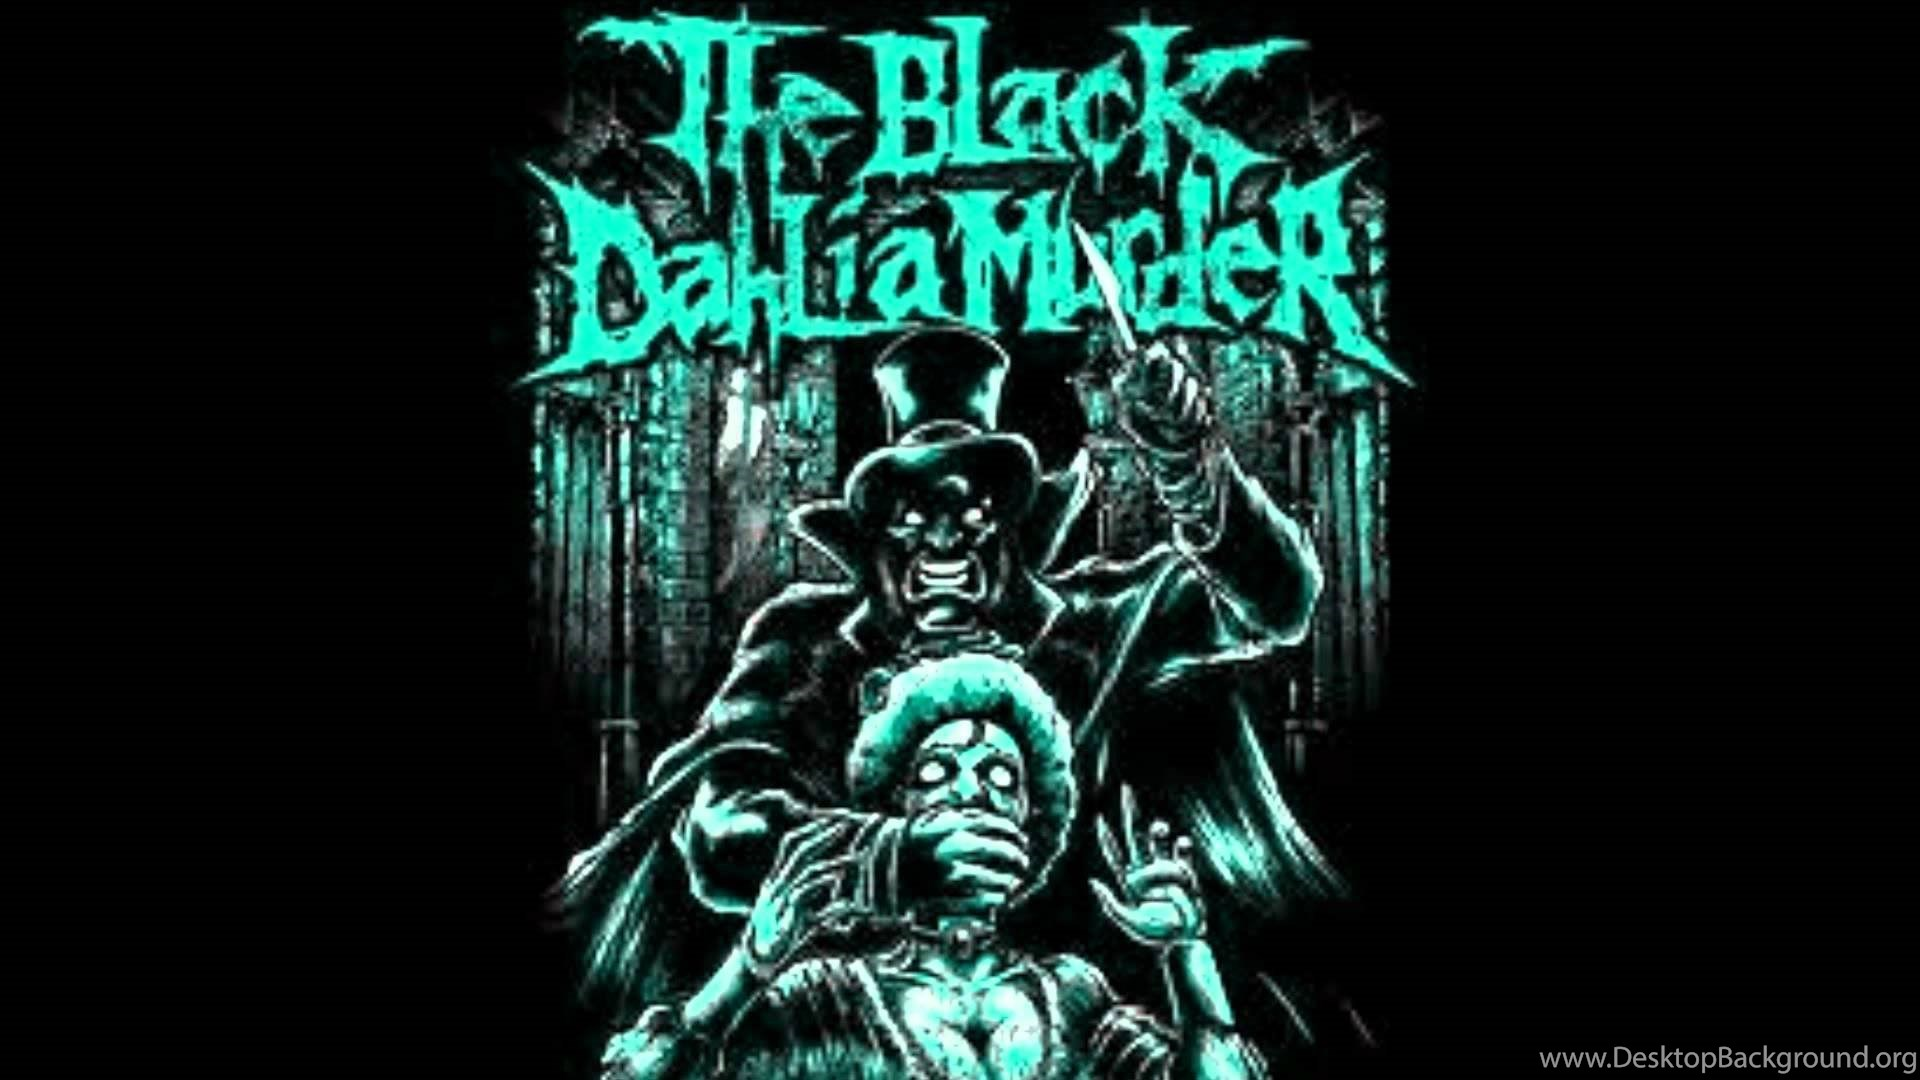 The Black Dahlia Murder Climactic Degradation Youtube Desktop Background